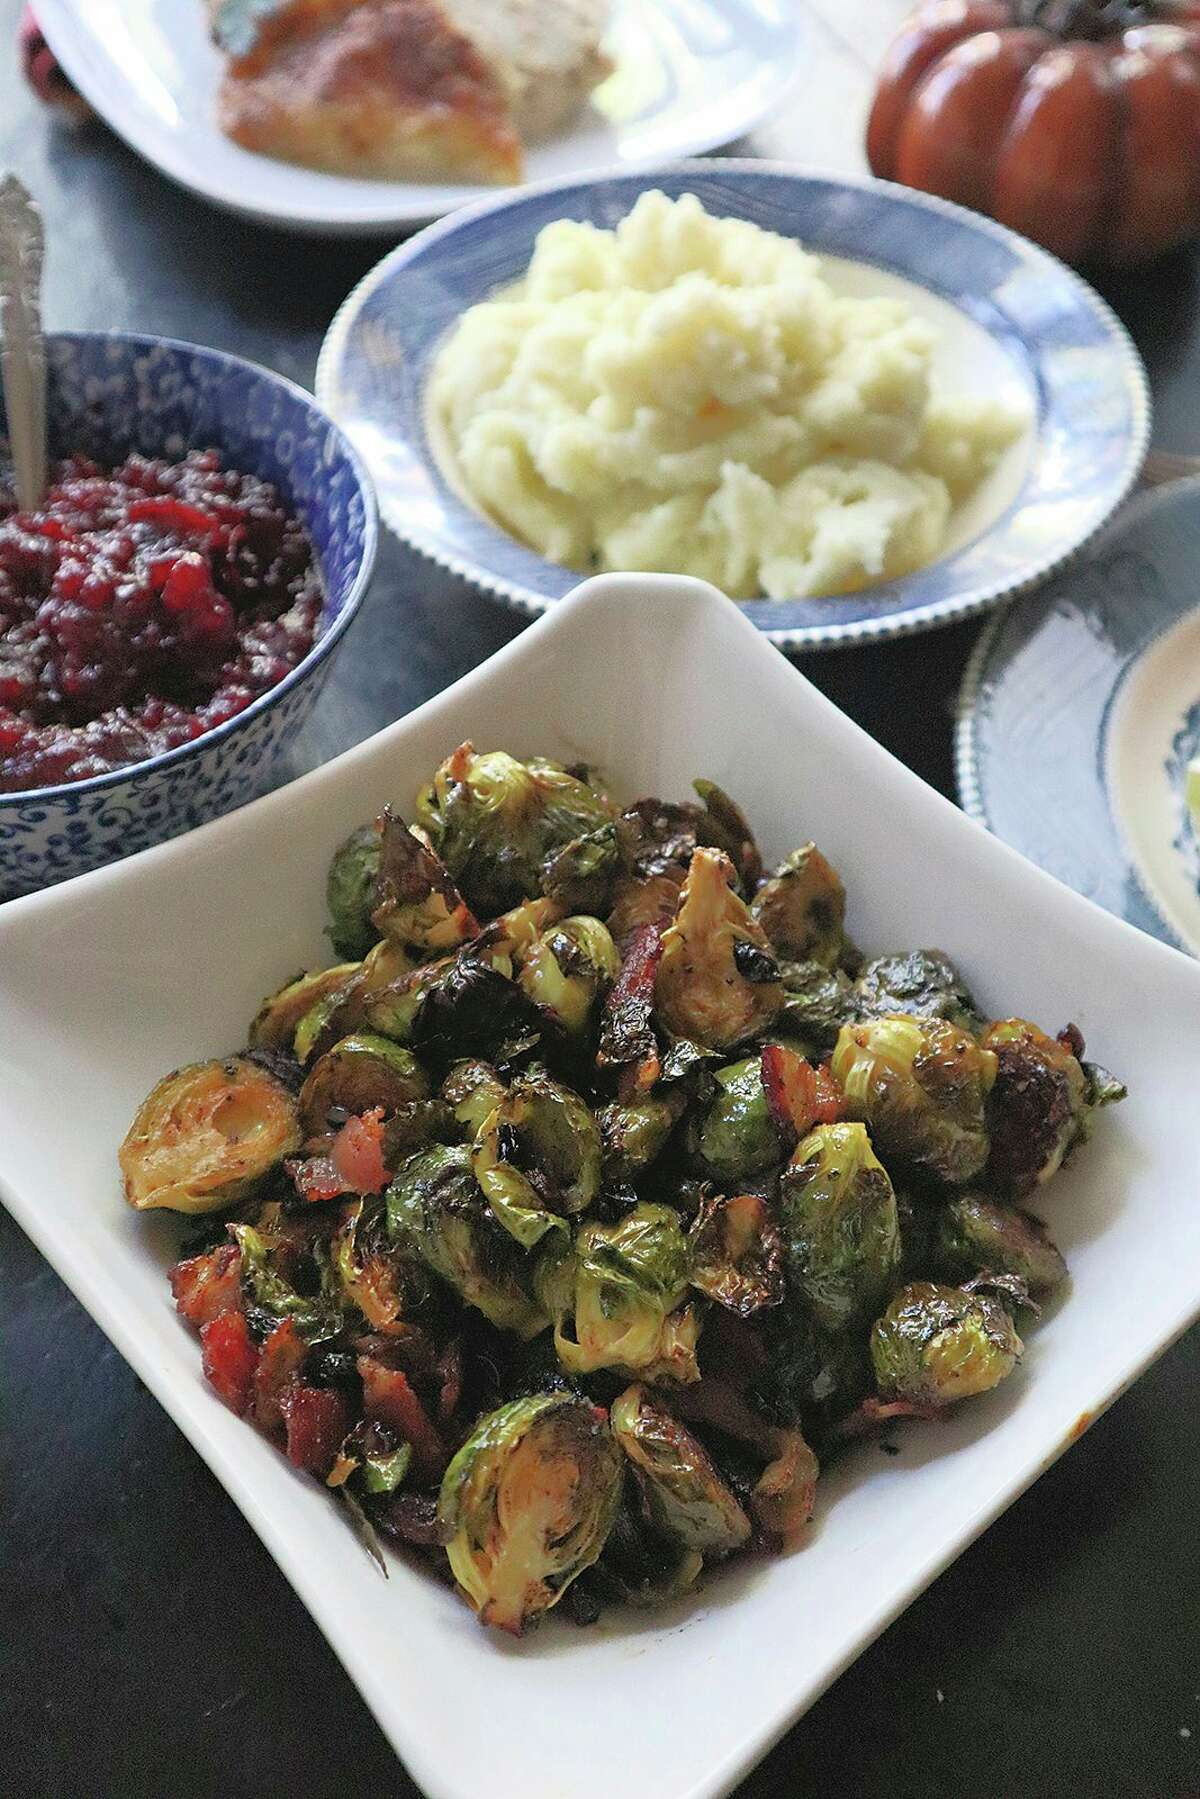 Brussels sprouts roasted with bacon and dried cranberries are easy to make, and full of fall flavor on Thanksgiving. (Gretchen McKay/TNS)